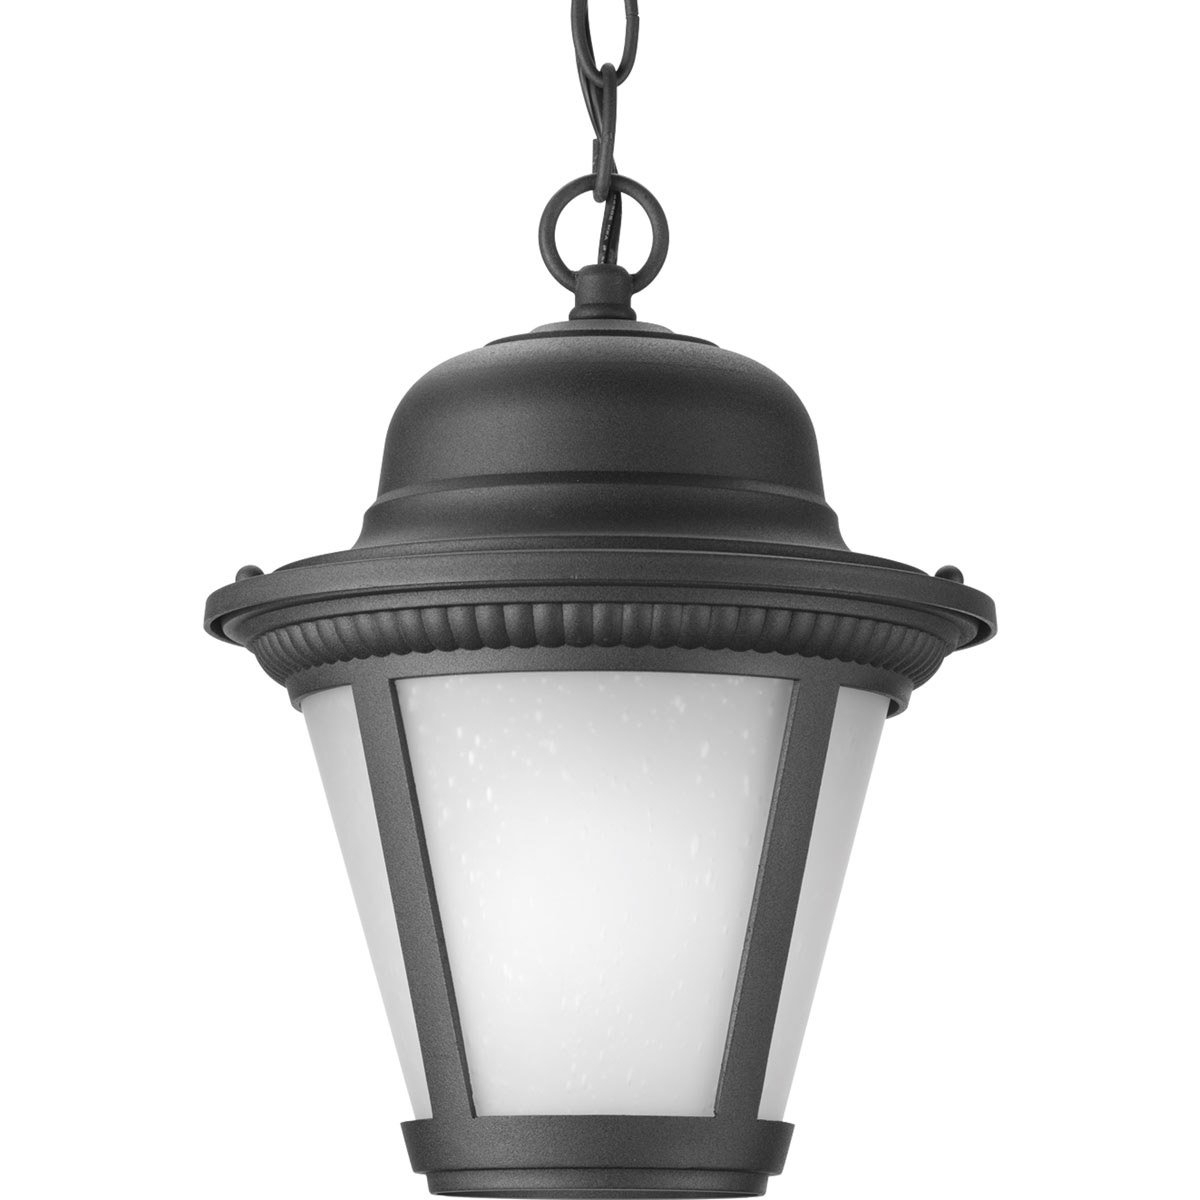 Progress Lighting P5530 3130k9 Westport Led 9 Inch Black Outdoor Throughout Widely Used Led Outdoor Hanging Lanterns (View 17 of 20)